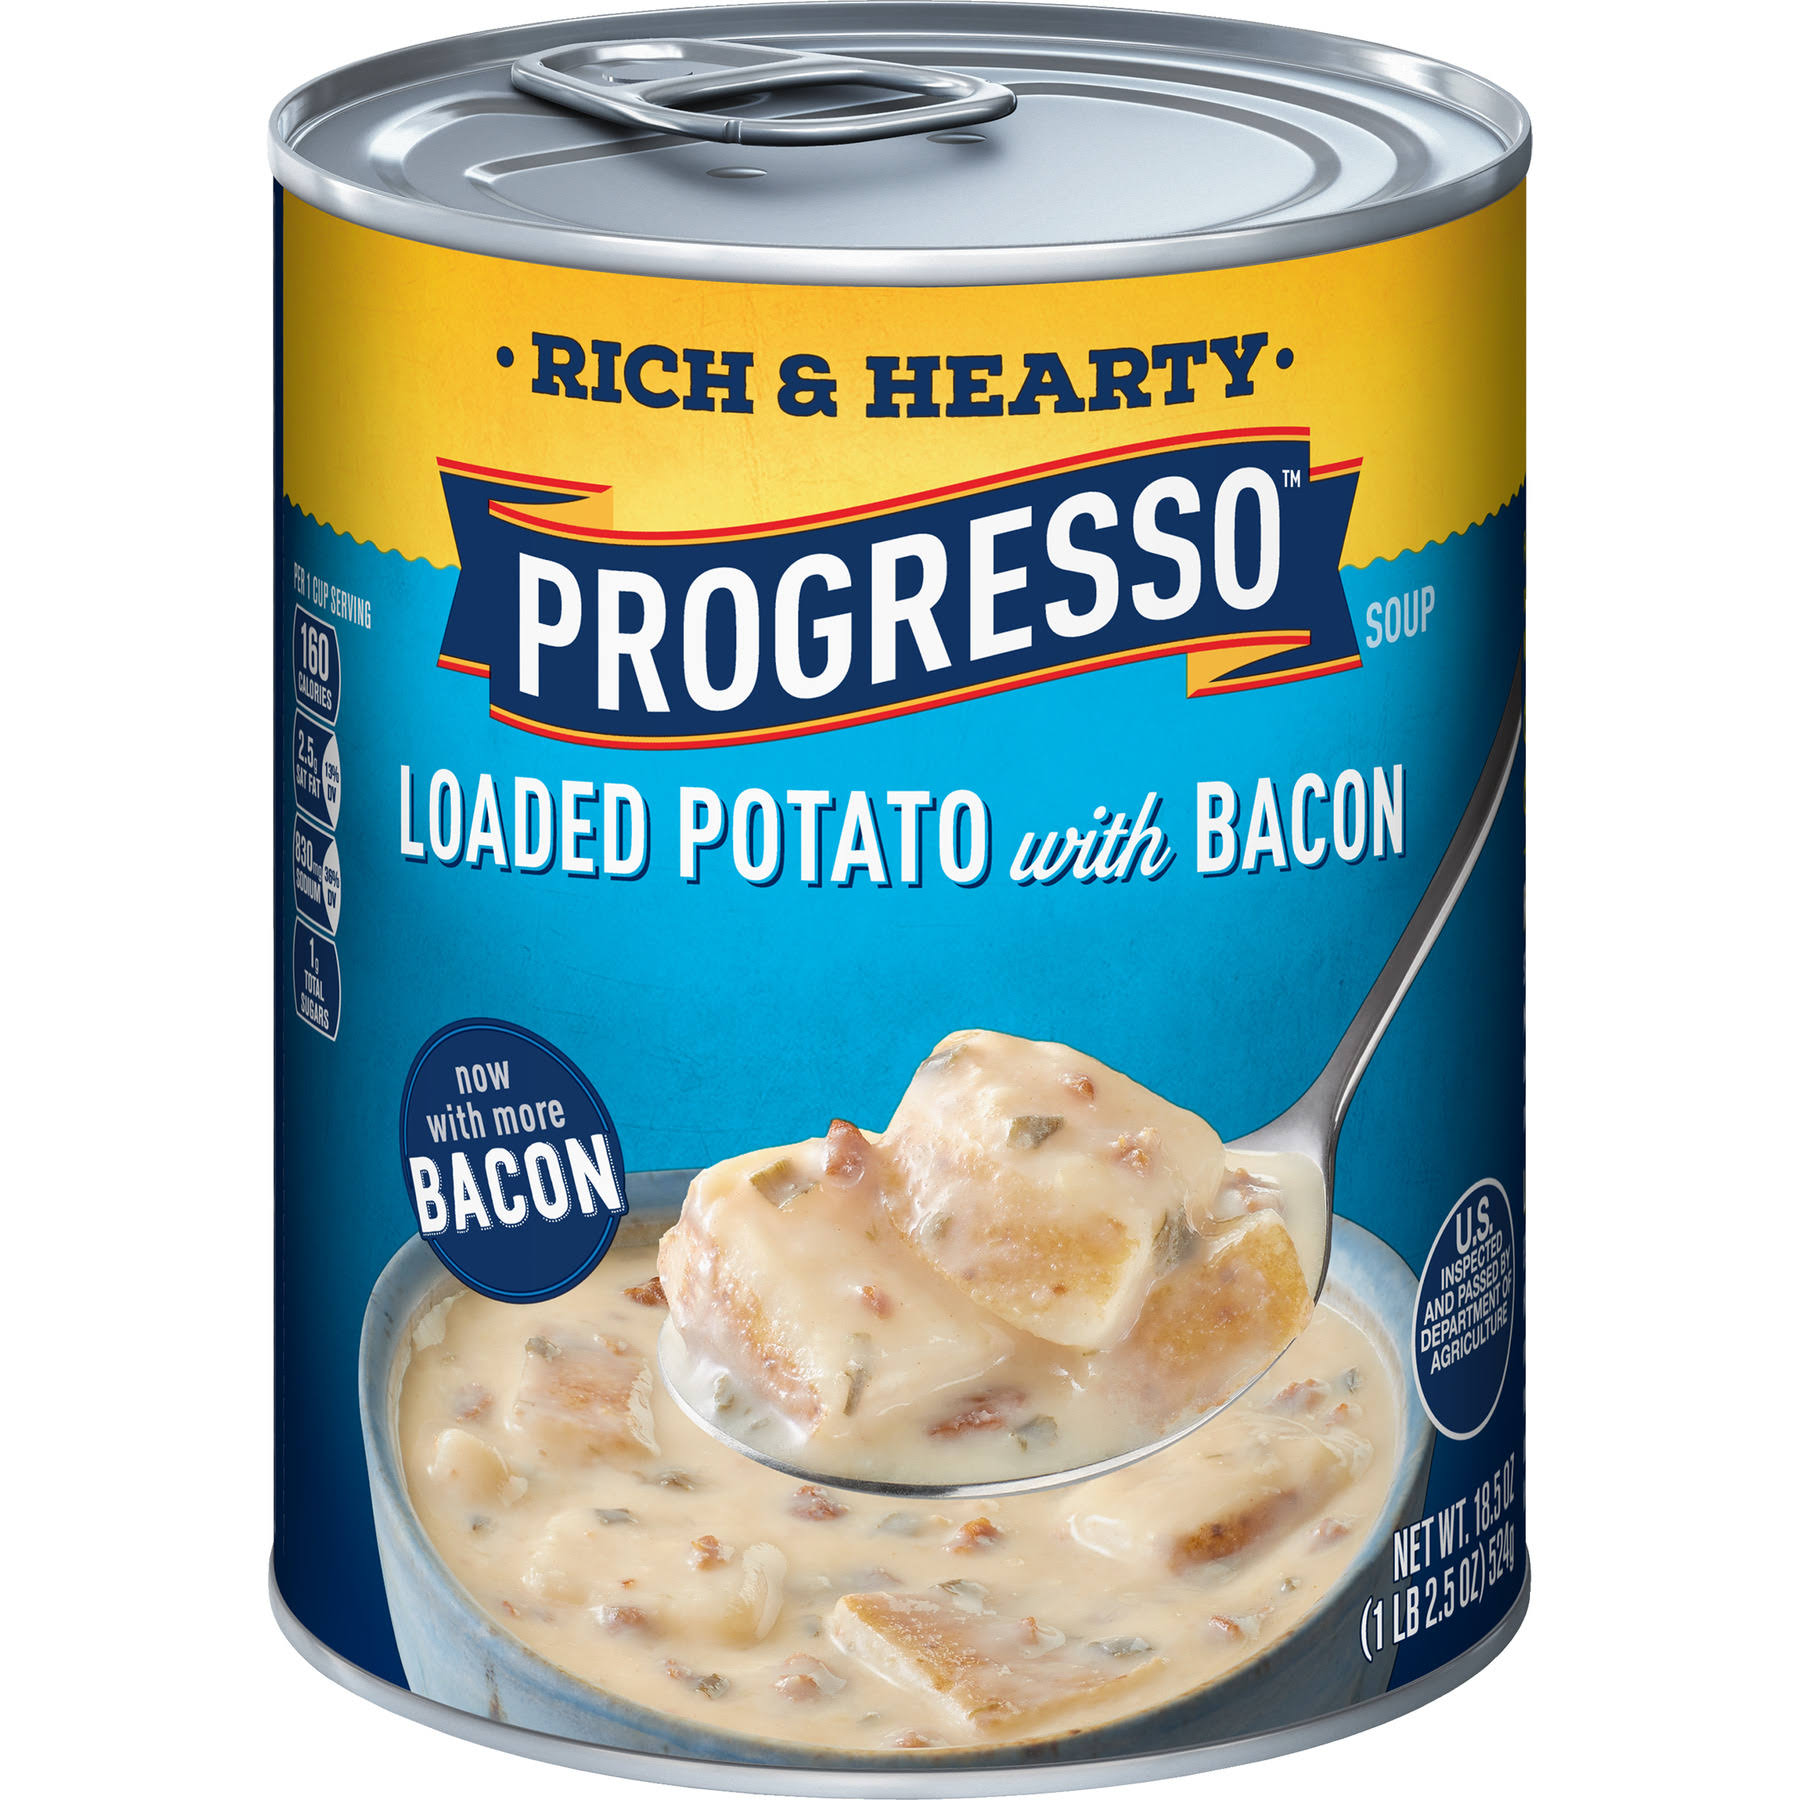 Progresso Rich and Hearty Soup - Loaded Potato with Bacon, 18.5oz